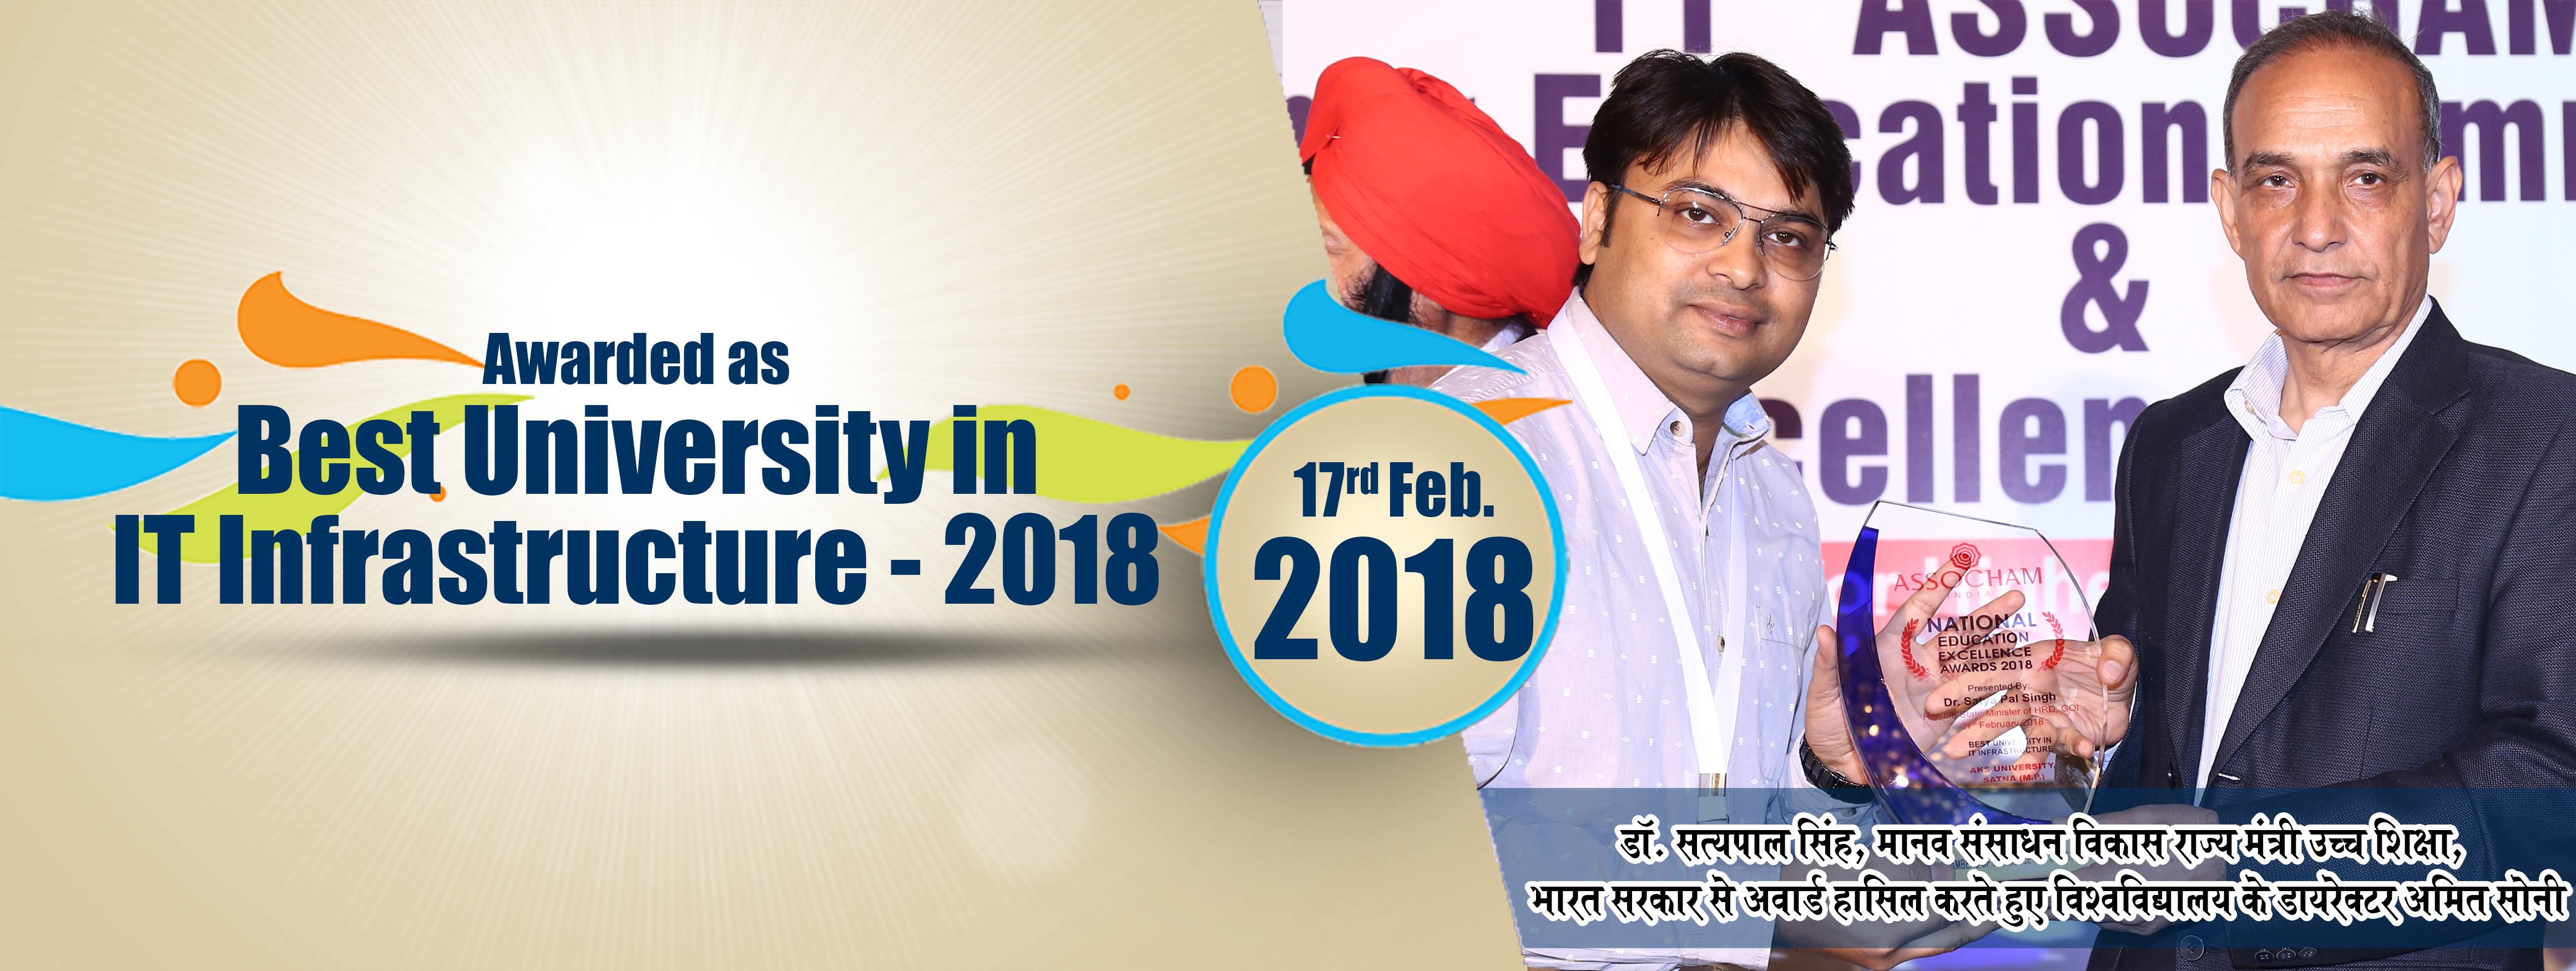 AKS University Best University in IT Infrastructure - 2018